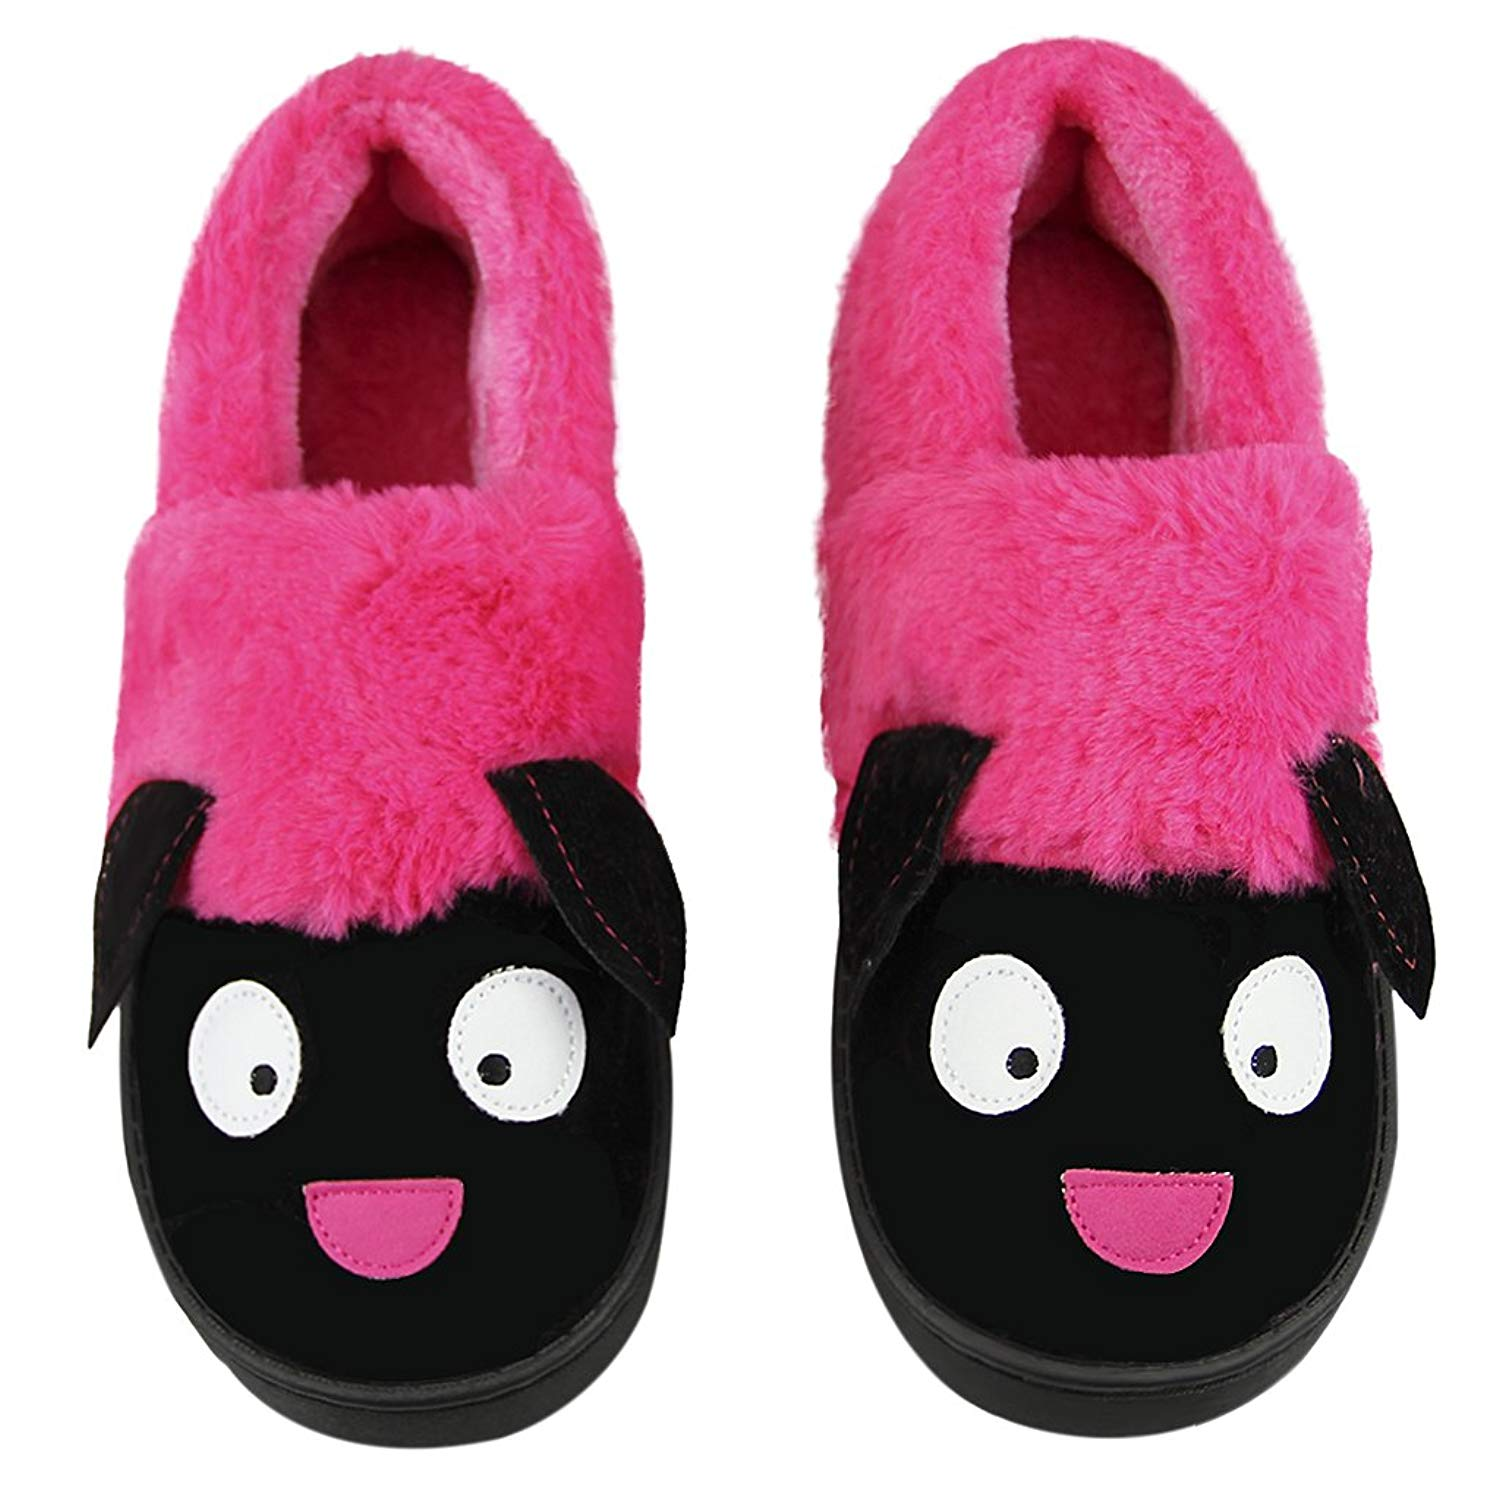 26dcaa7946df Get Quotations · Unisex Winter Indoor Slip-on Slippers